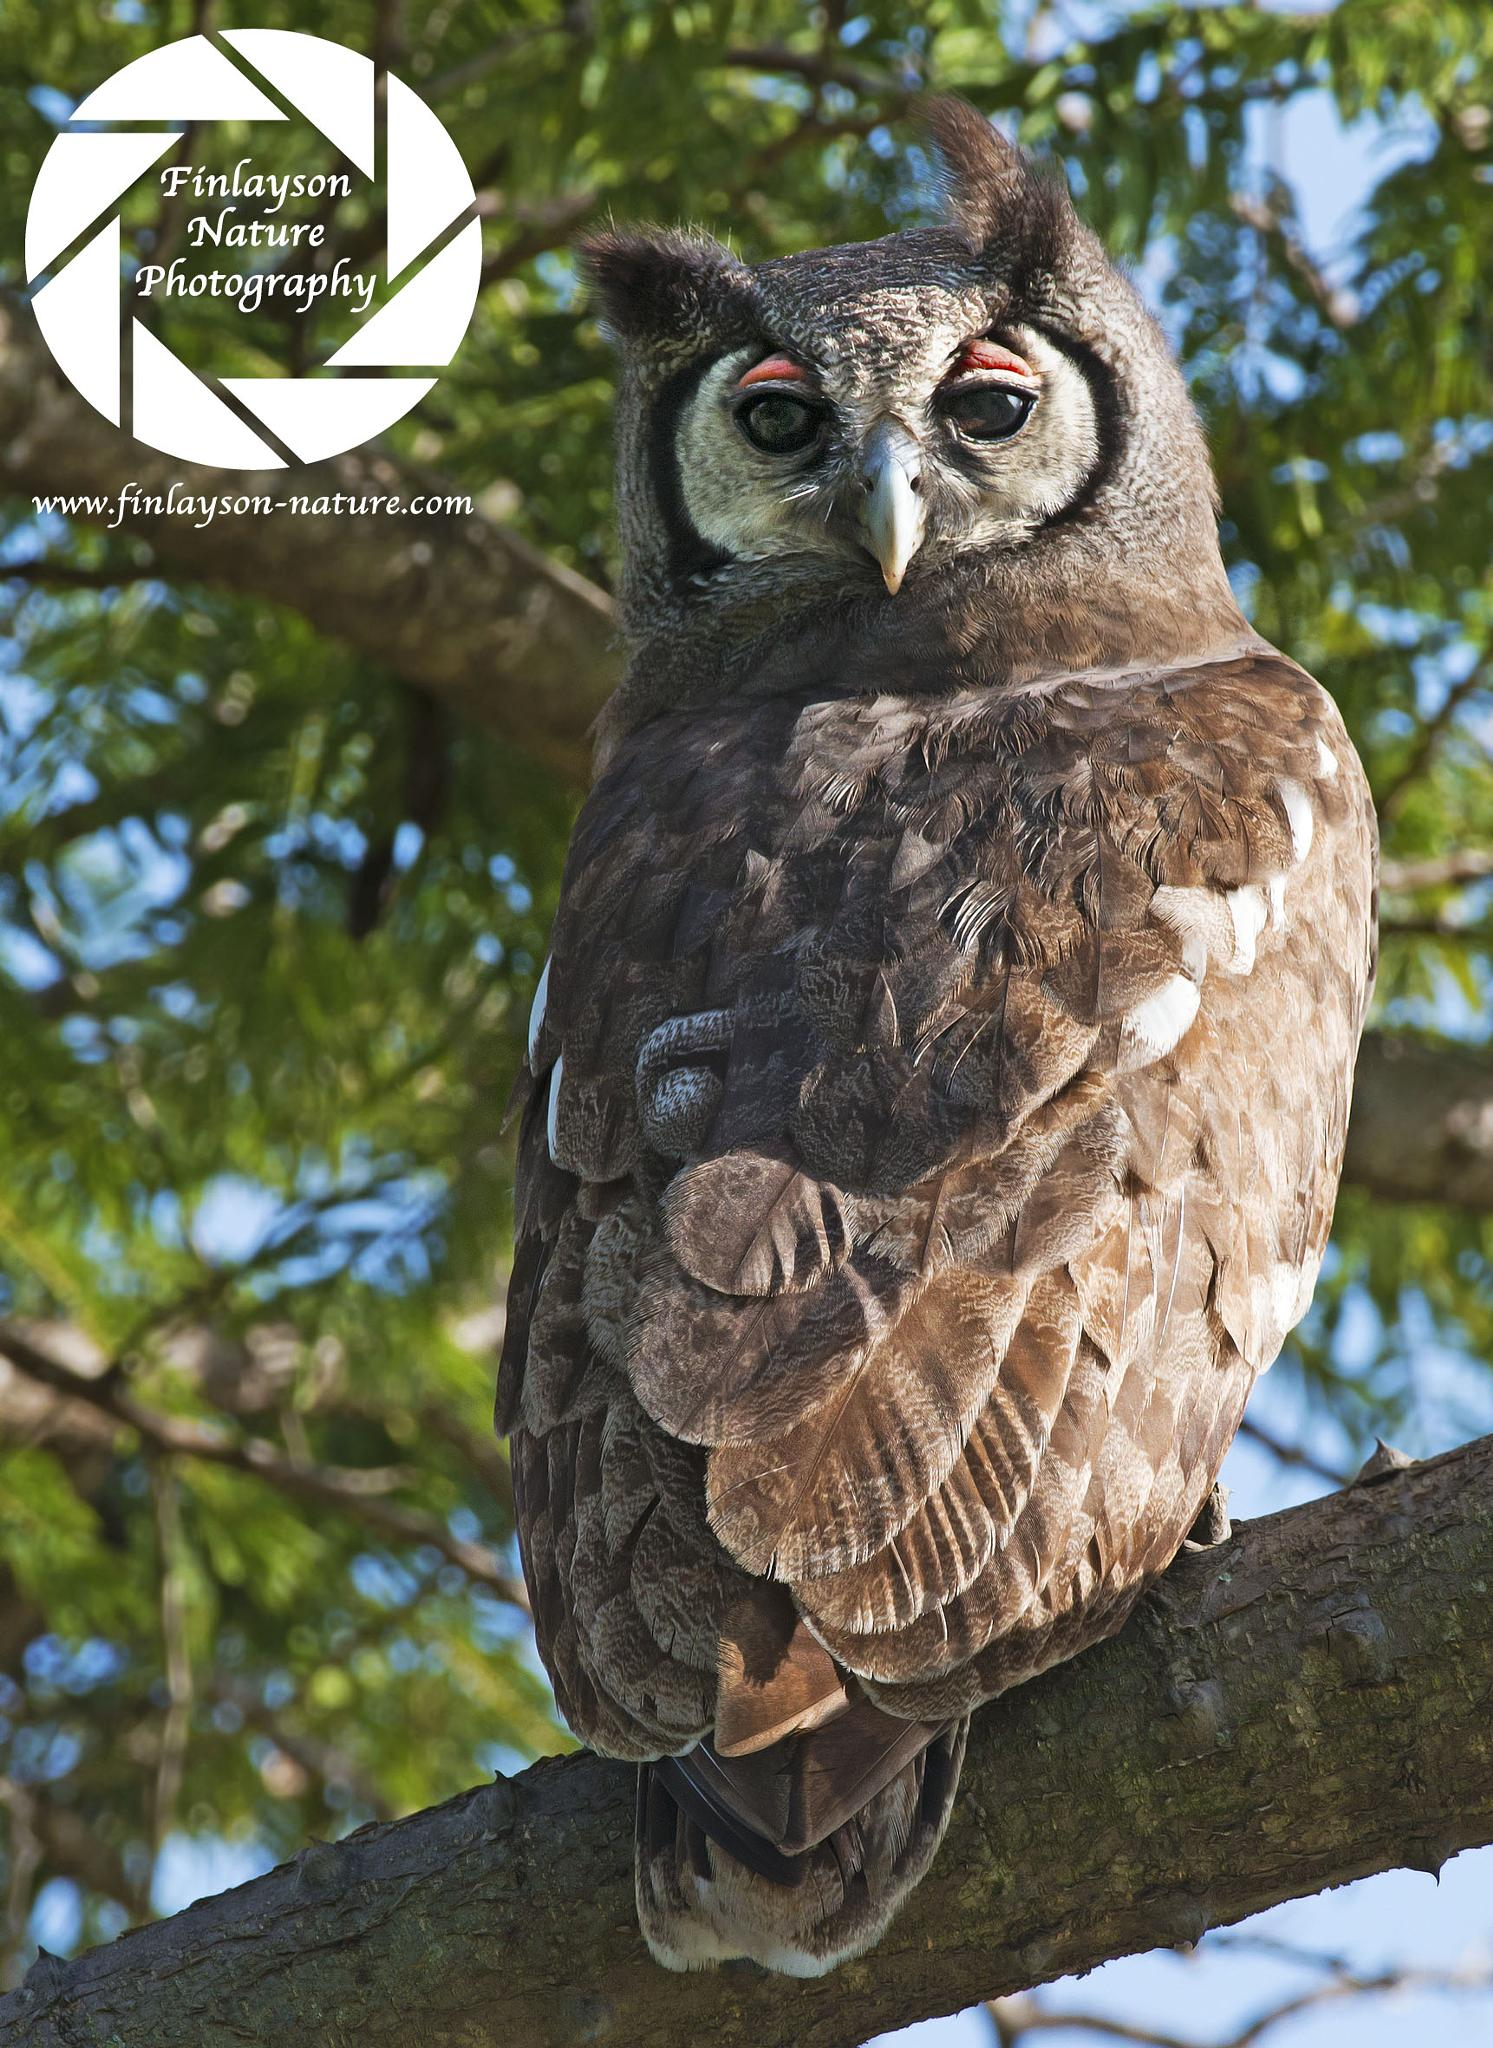 Africa's giant owl by Clive Finlayson